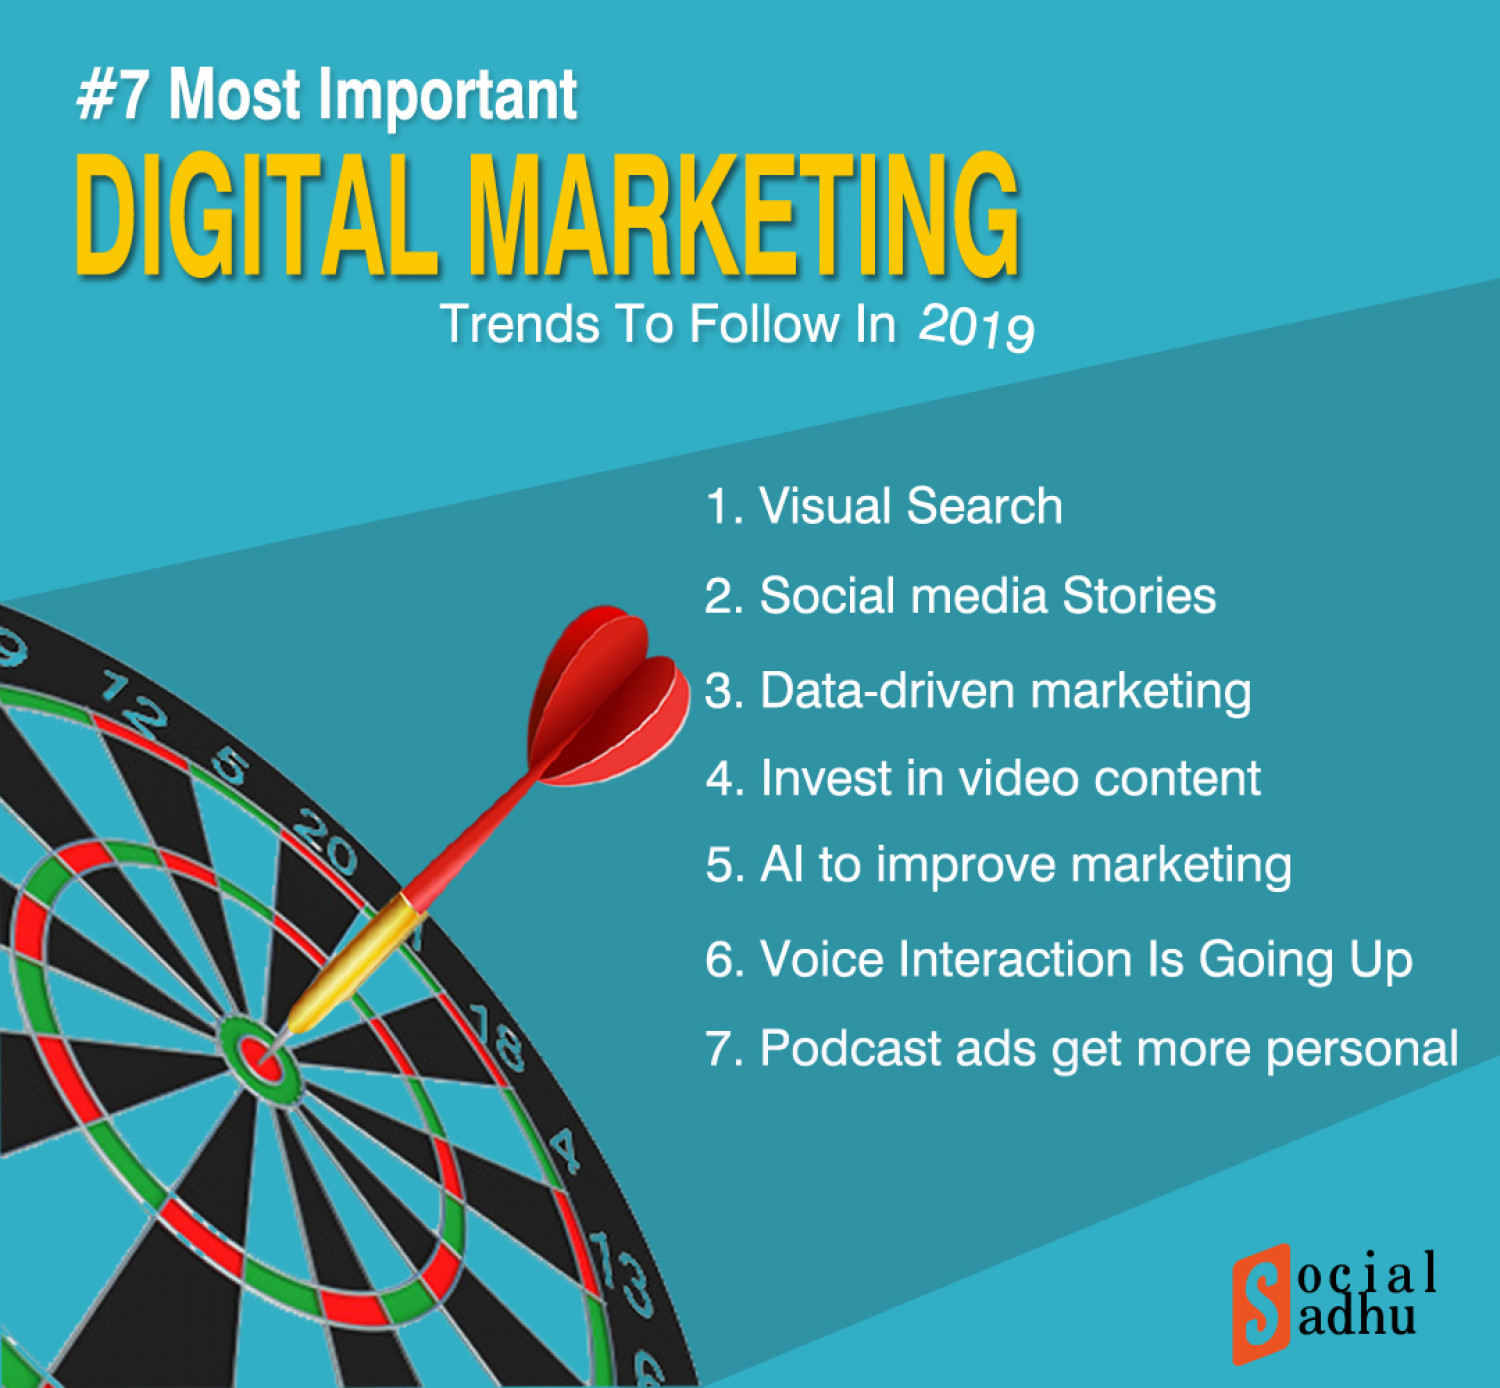 Digital Marketing Trends to Follow 2019 Infographic